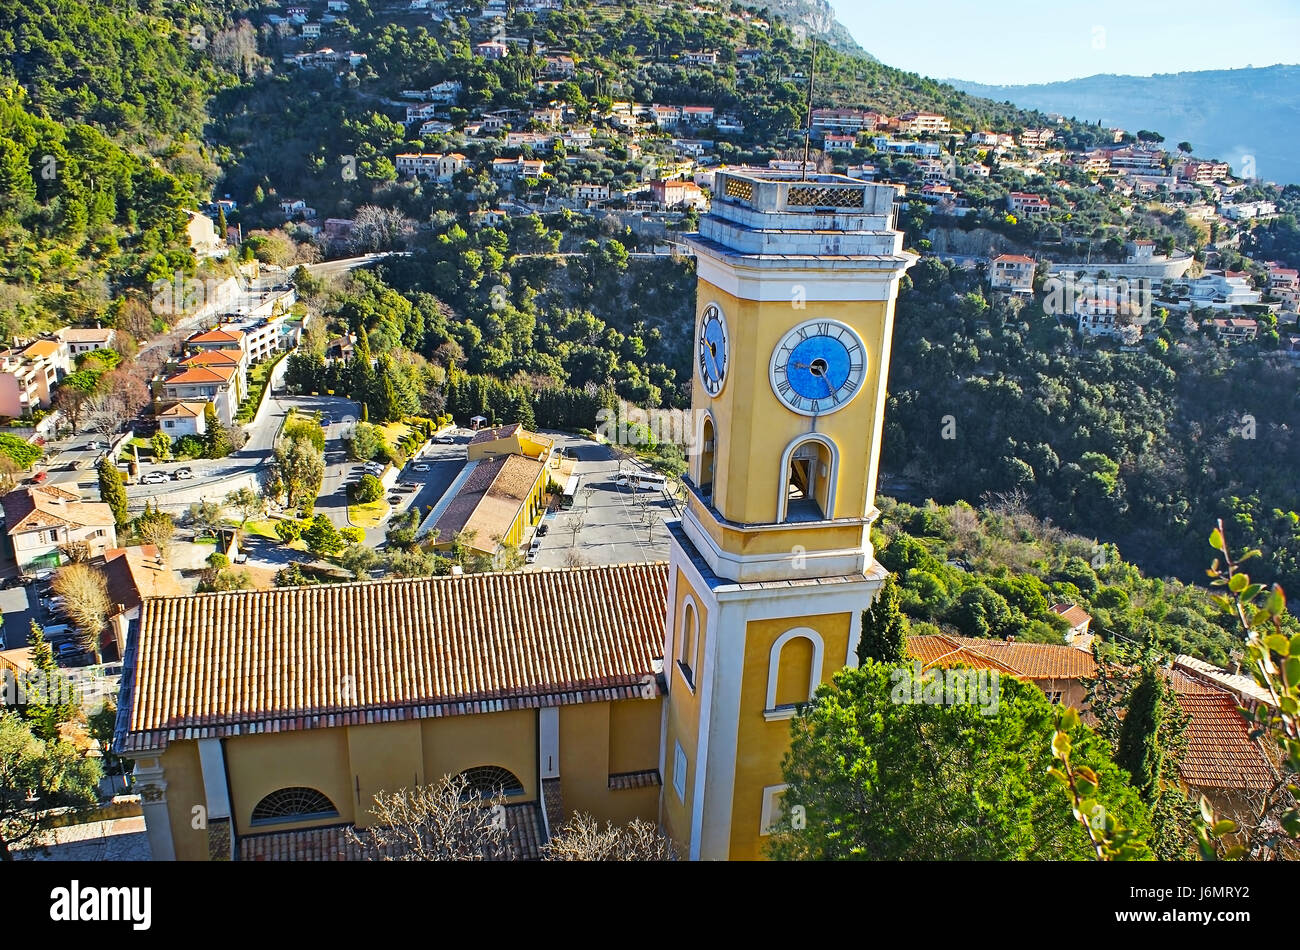 The clock tower of the Church of Our Lady of the Assumption, from the hilltop of Eze village, France. Stock Photo